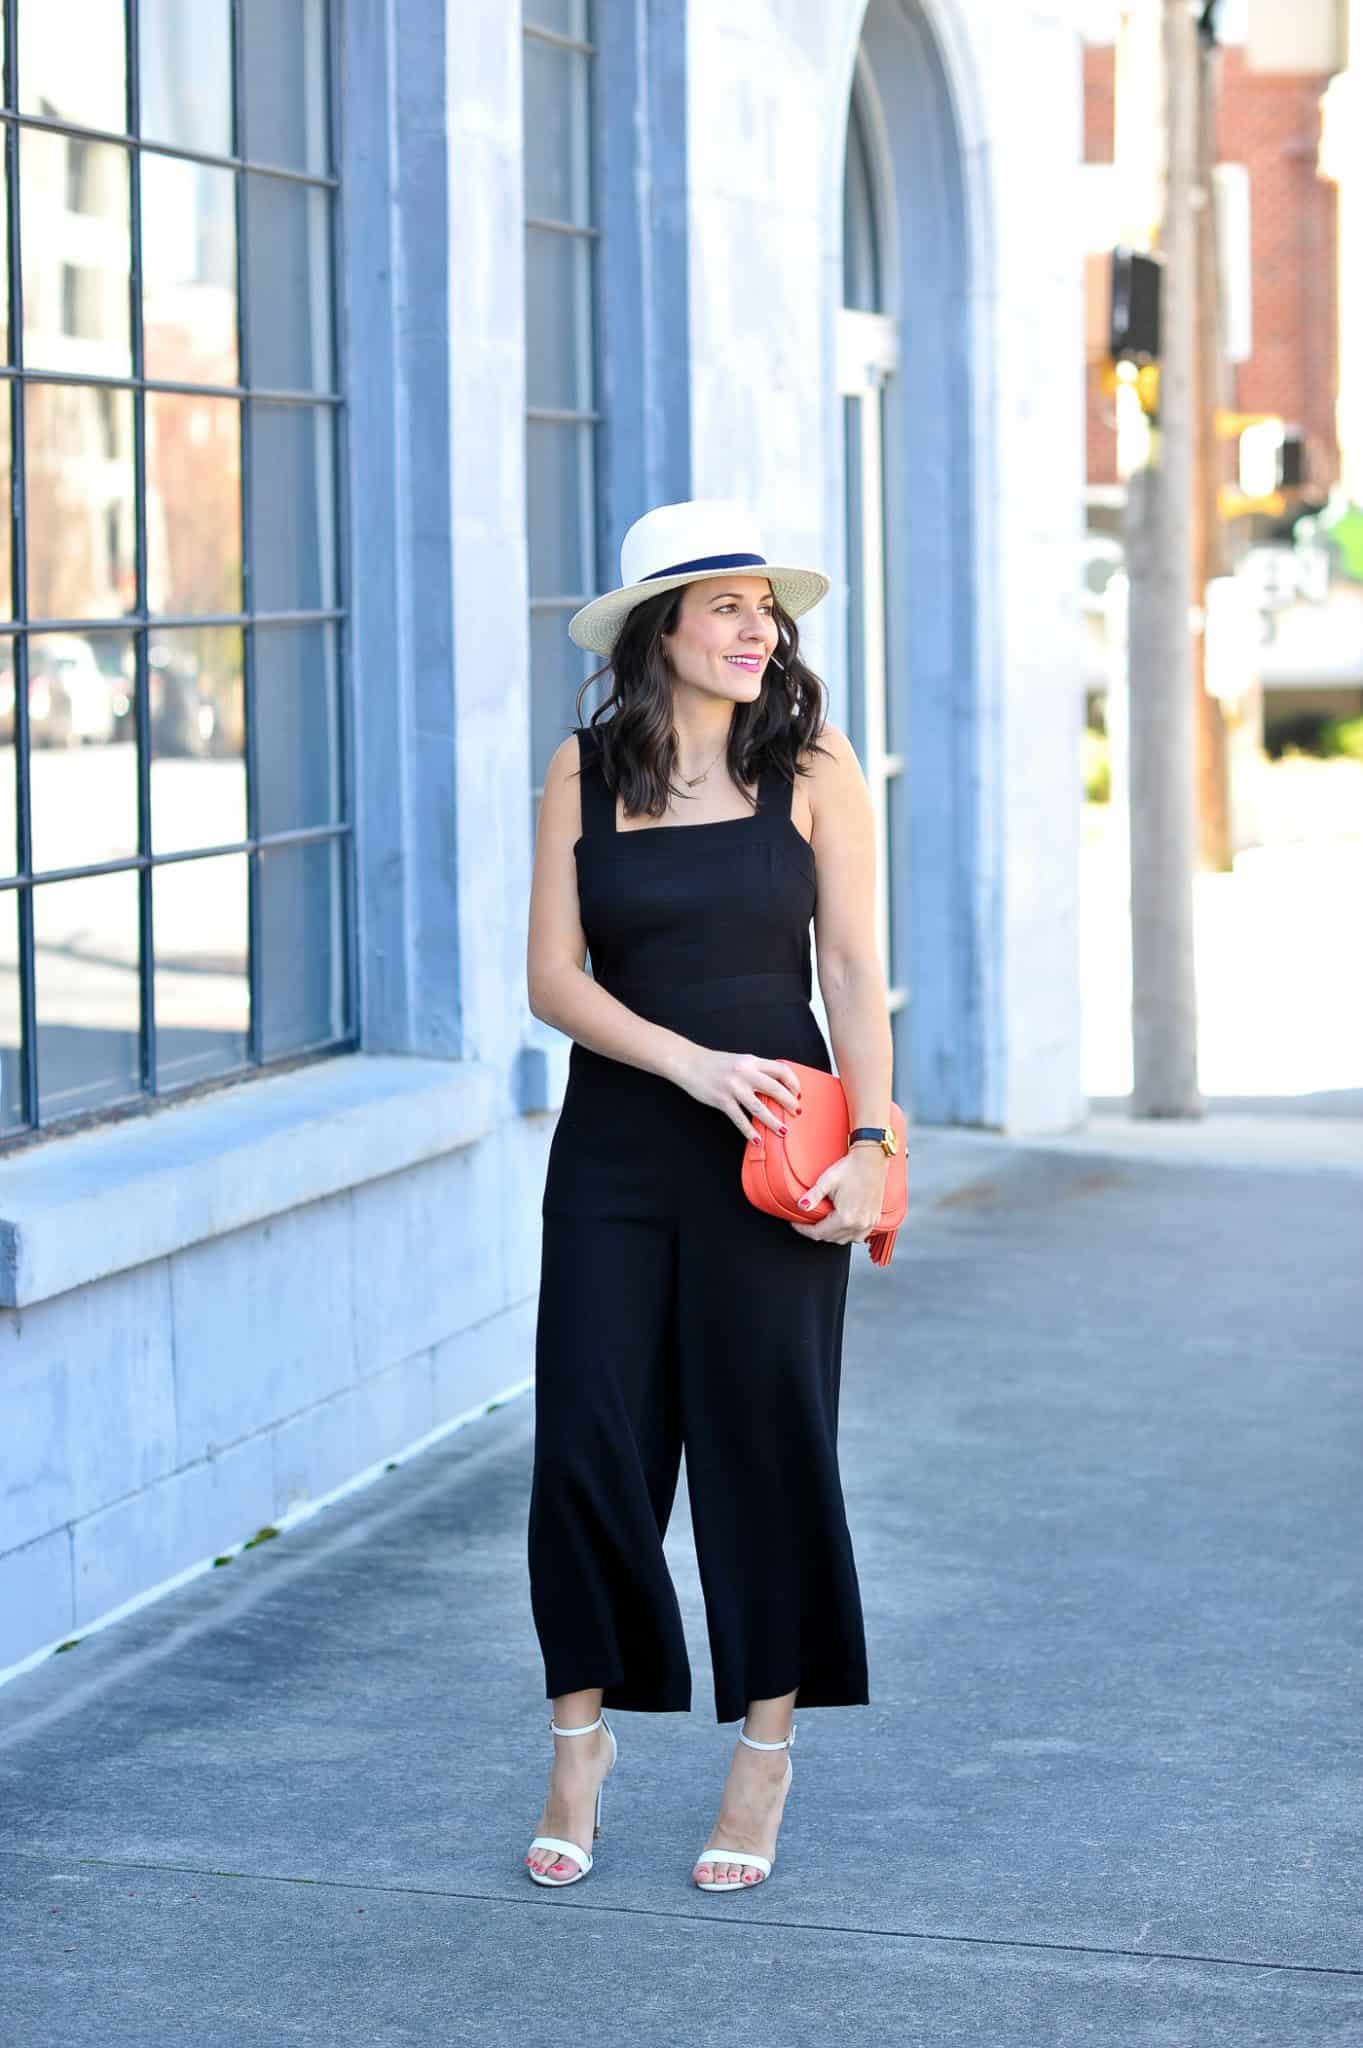 neon bag and black jumpsuit